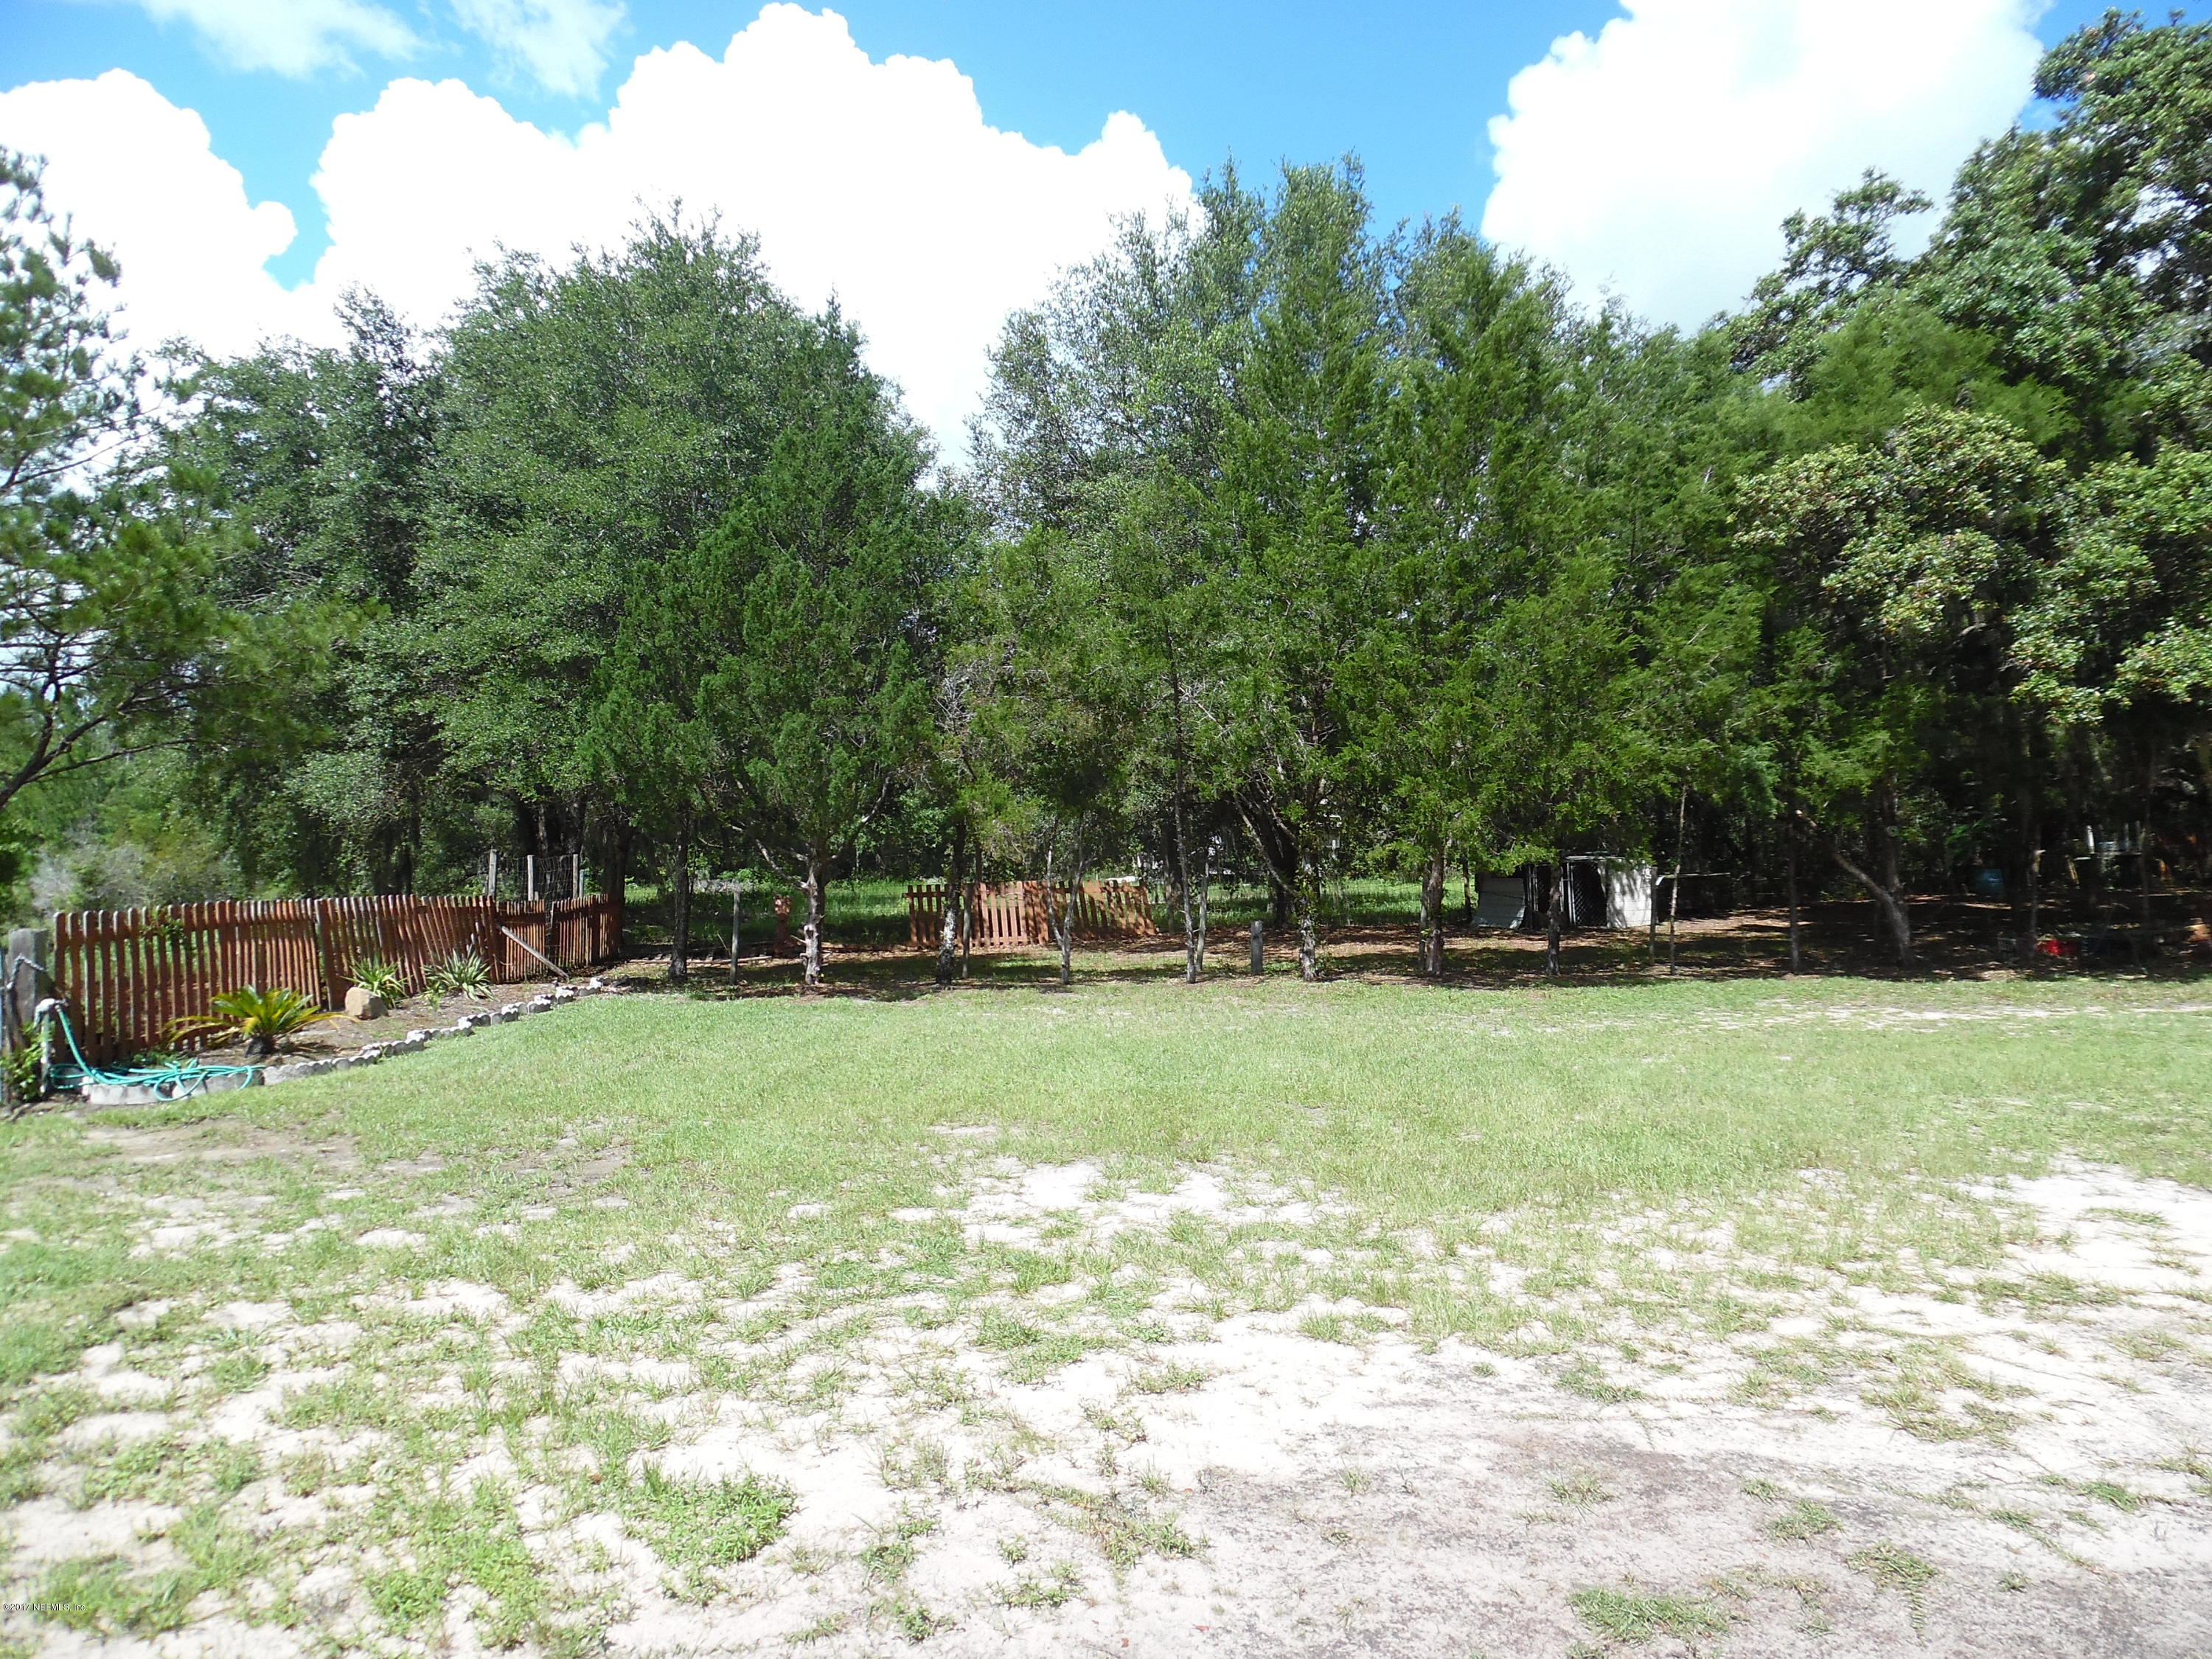 163 LAKEVIEW, HAWTHORNE, FLORIDA 32640, 1 Bedroom Bedrooms, ,2 BathroomsBathrooms,Residential - single family,For sale,LAKEVIEW,893295